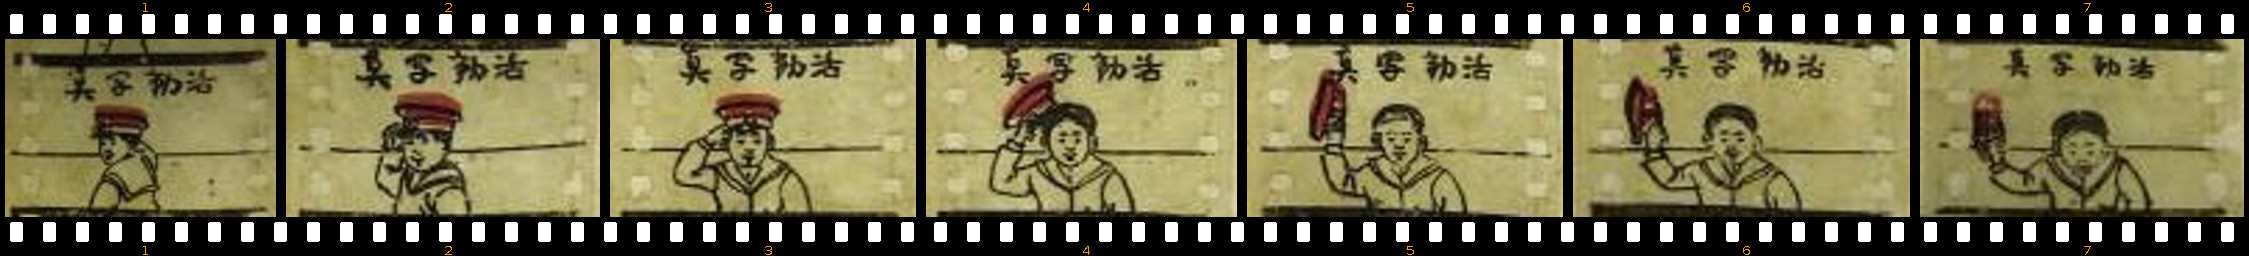 A strip of film from the animated film Katsudō Shashin (1907), modified by Bernd Klein